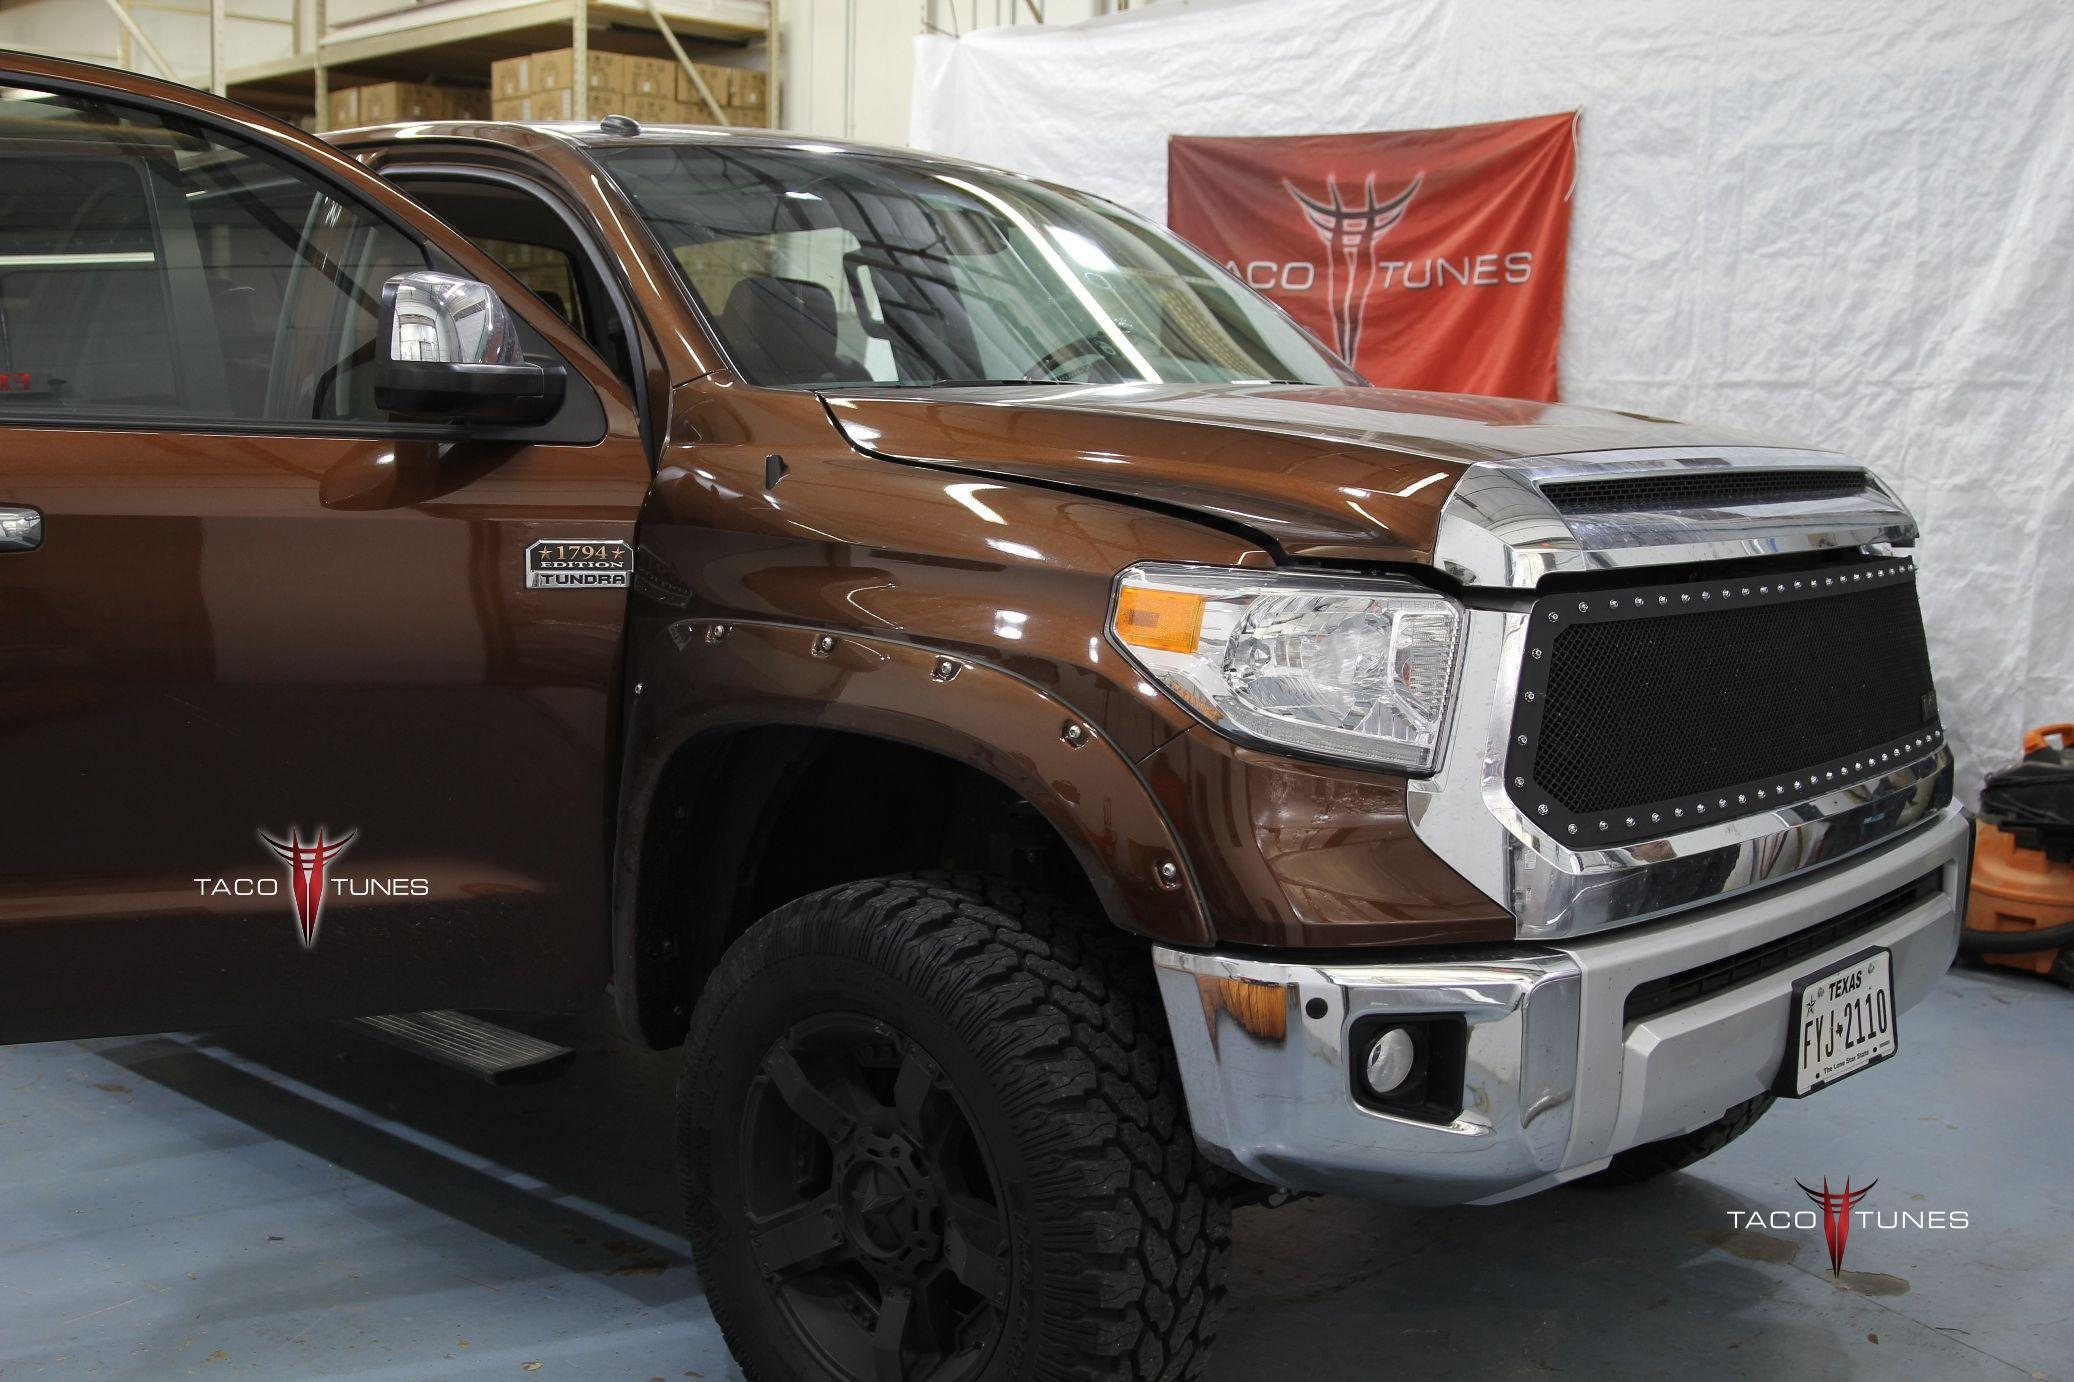 toyota tundra crewmax 1794 edition 2015 new stereo installation 1 taco tunes toyota audio. Black Bedroom Furniture Sets. Home Design Ideas